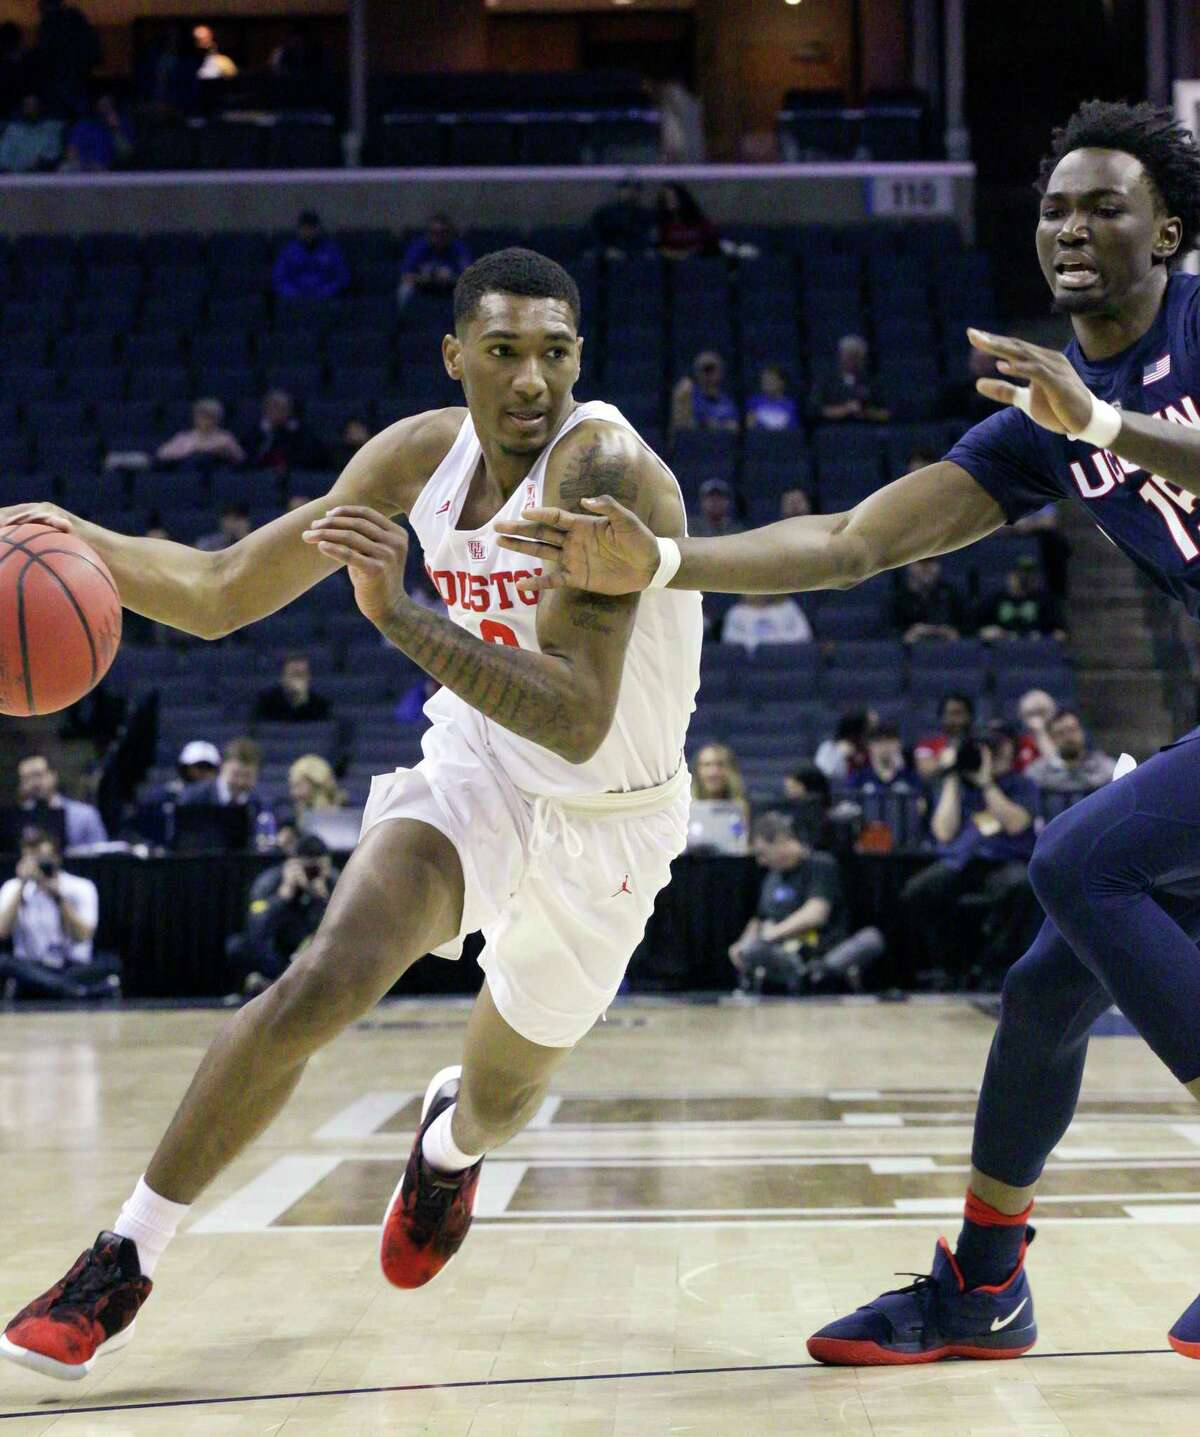 Houston's Armani Brooks, left, drives the ball around Connecticut's Sidney Wilson during the first half of an NCAA college basketball game against Houston at the American Athletic Conference tournament Friday, March 15, 2019, in Memphis, Tenn. (AP Photo/Troy Glasgow)